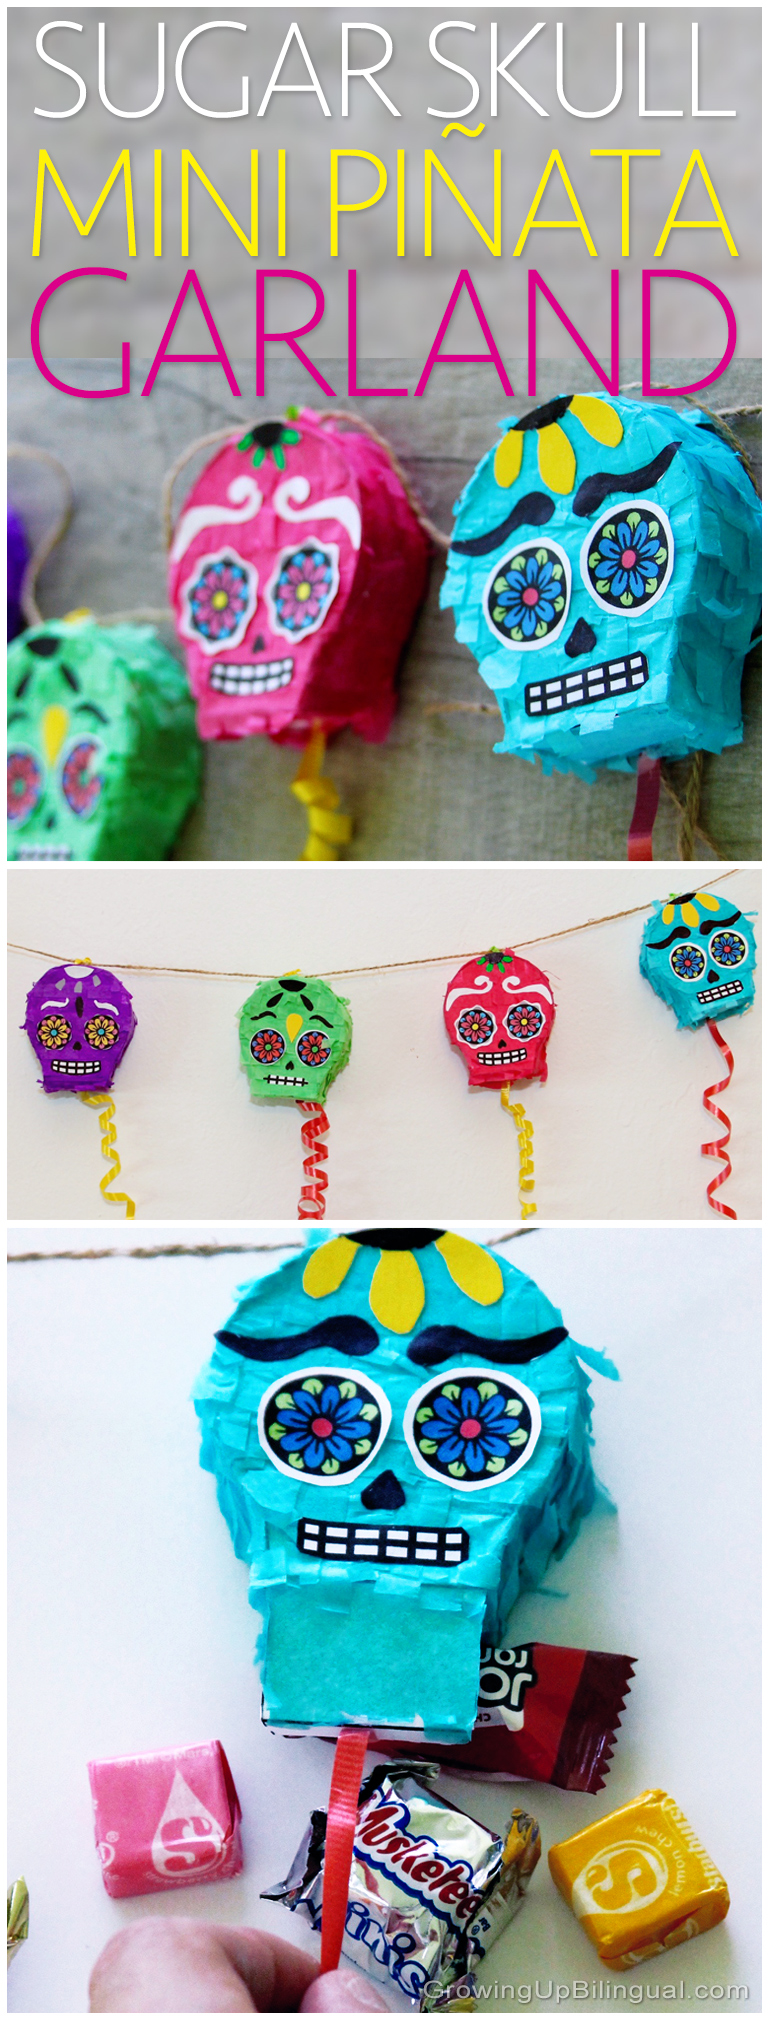 DIY Day Of The Dead Sugar Skull Piñata Garland - Growing Up Bilingual